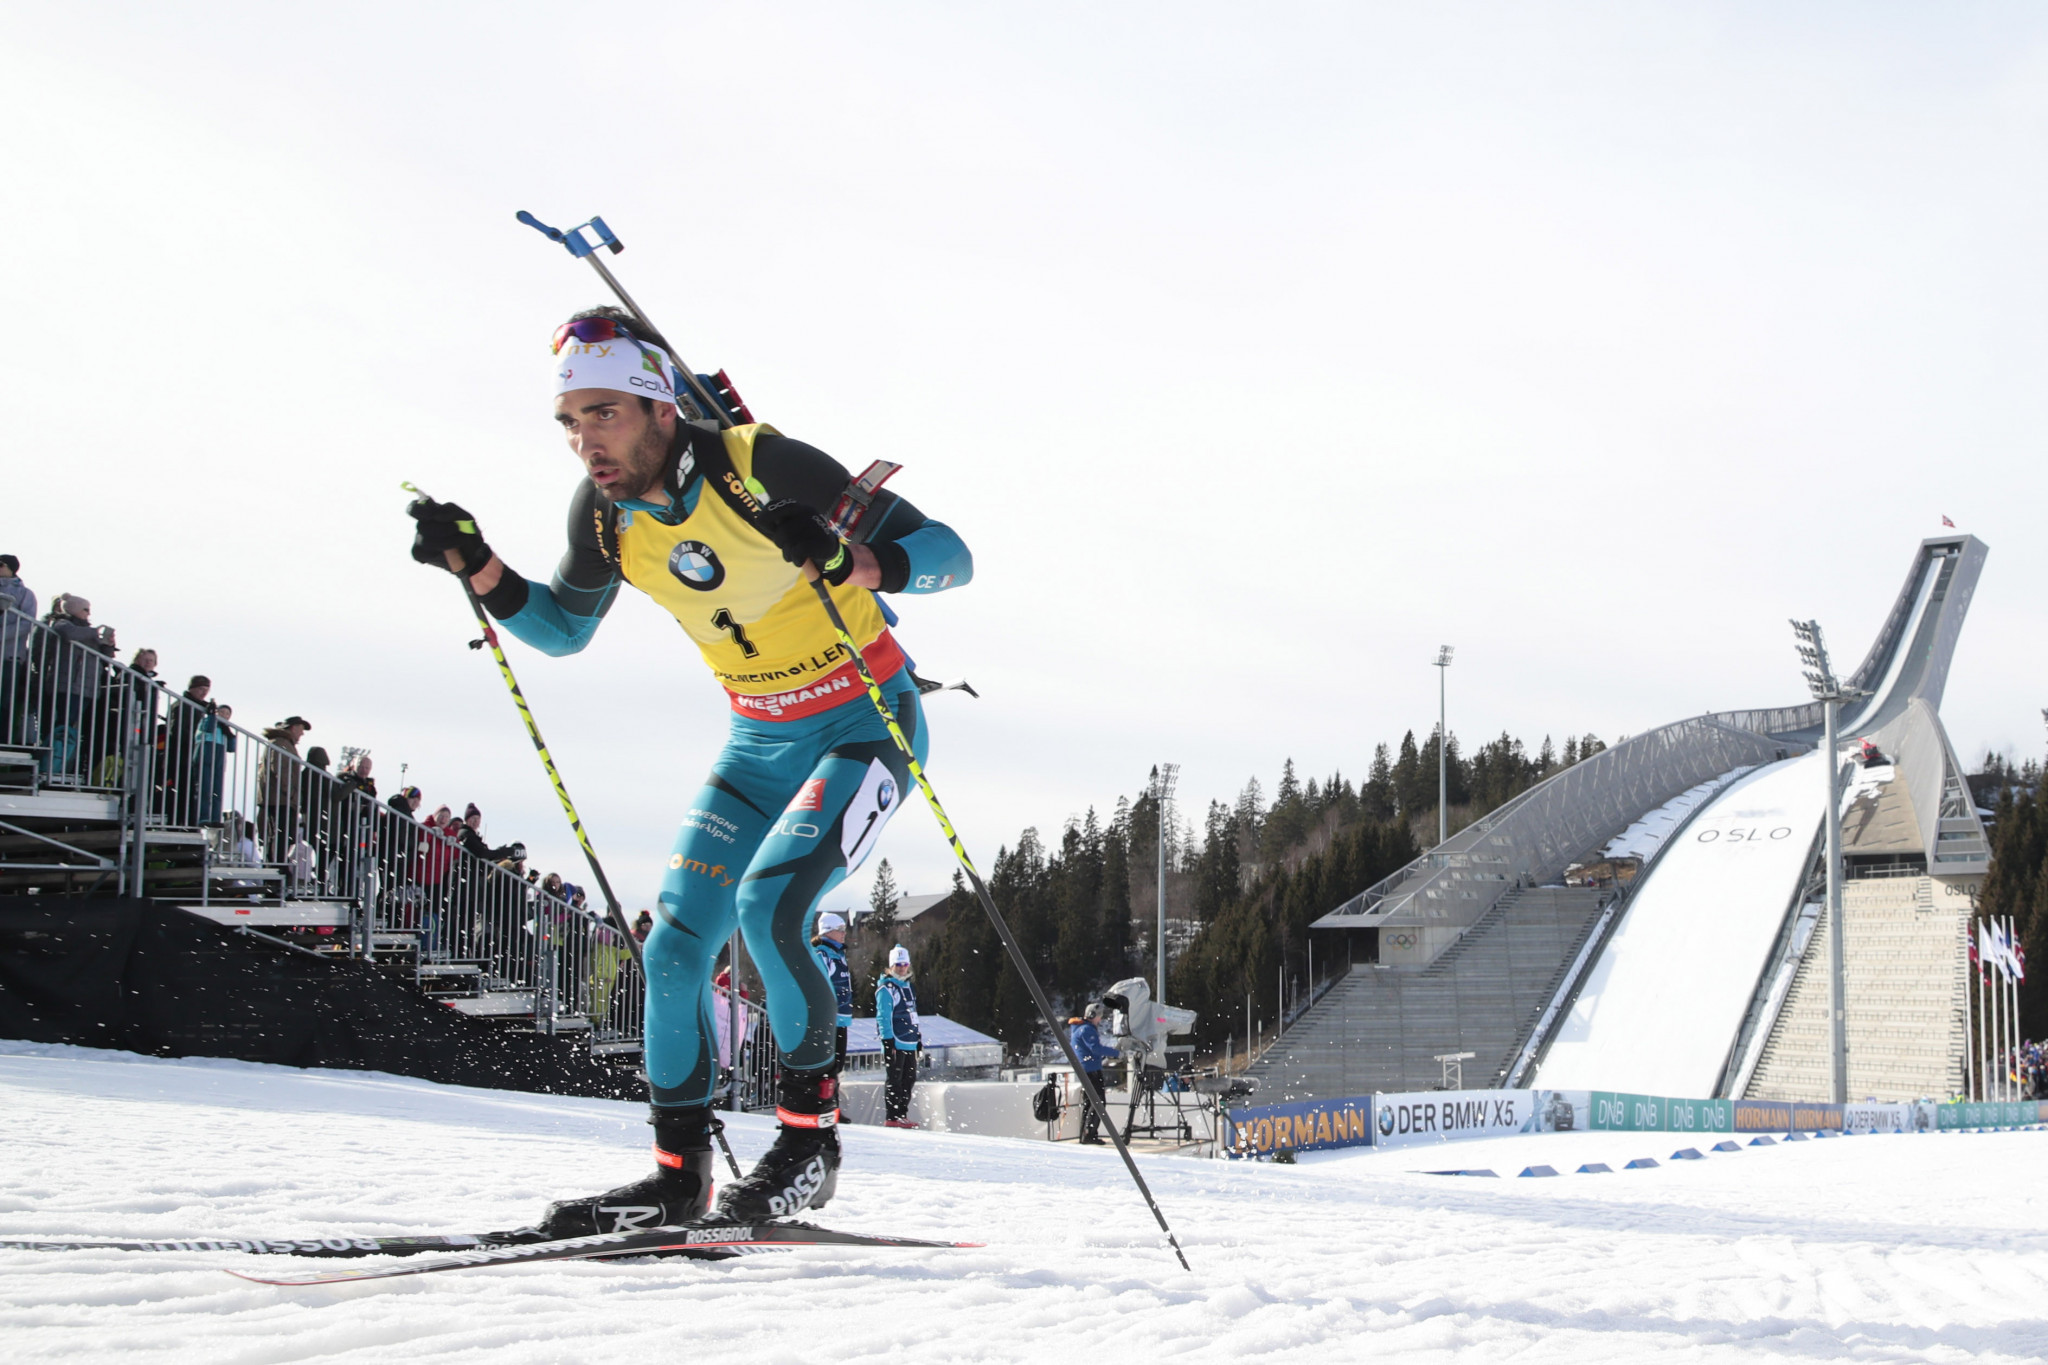 Fourcade cleared to compete after blood tests reveal he has not contracted a virus